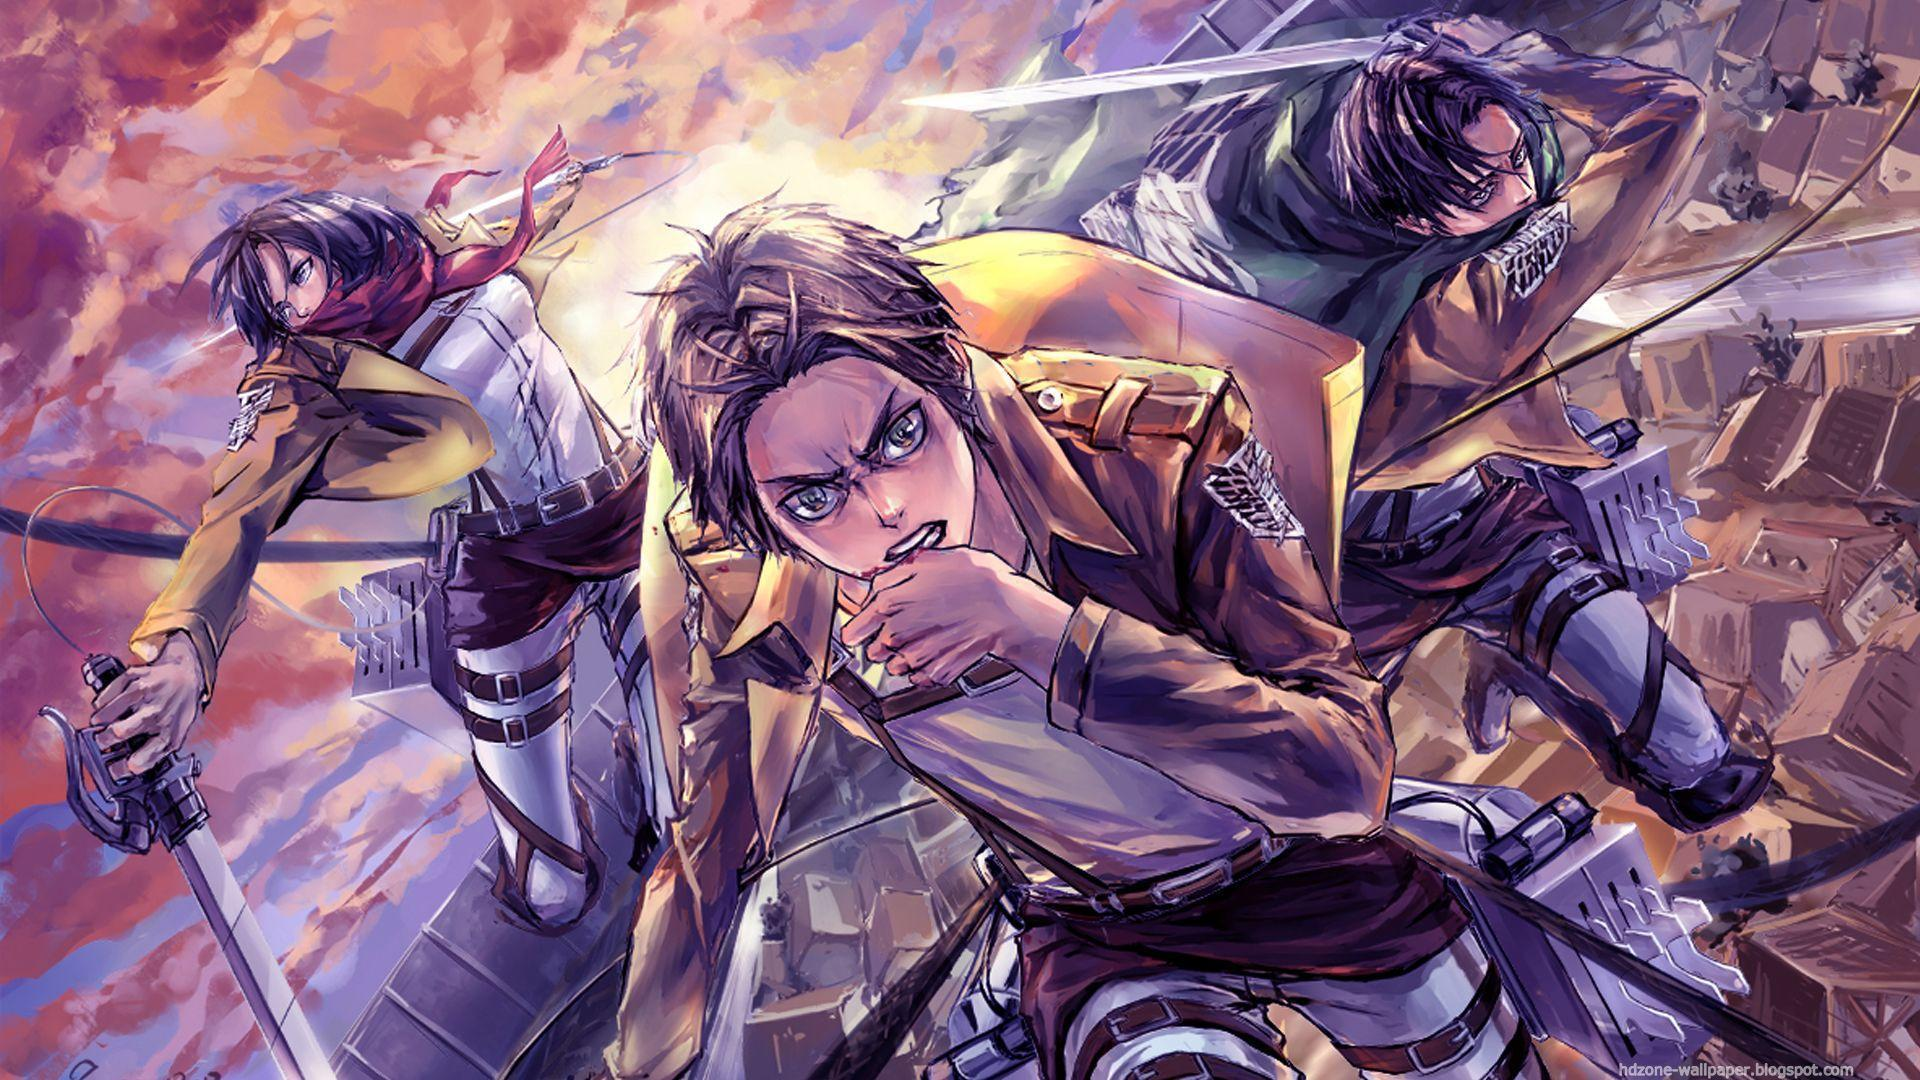 Shingeki no kyojin wallpapers wallpaper cave shingeki no kyojin hd wallpaper wallpaper hd voltagebd Image collections